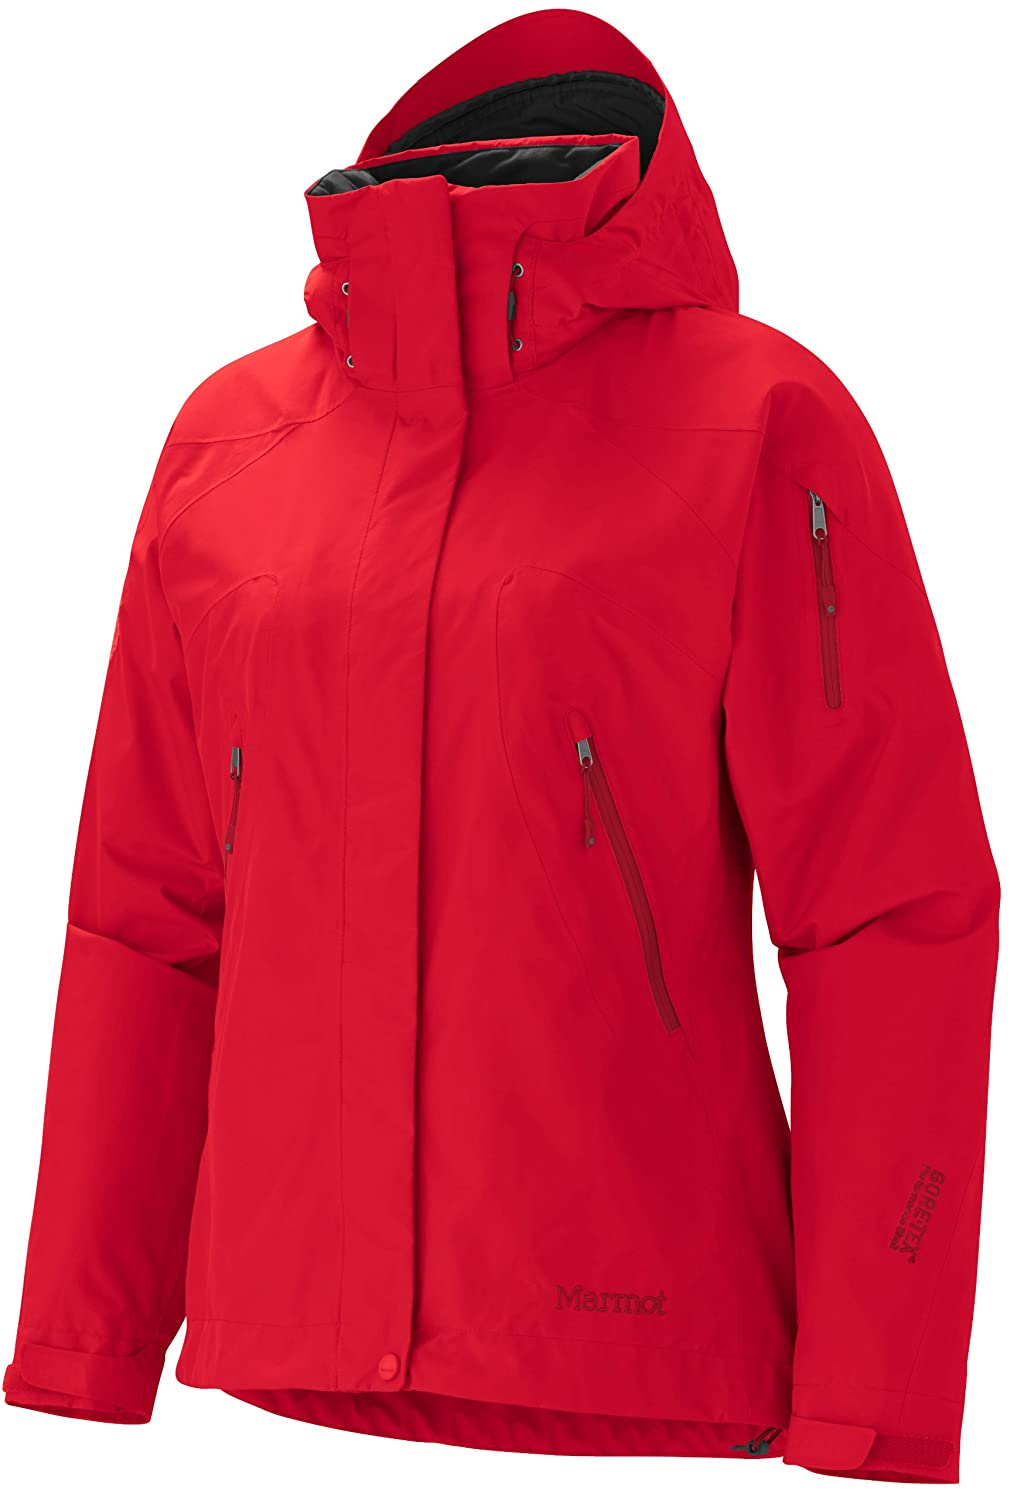 Marmot Damen 2-Lagen GoreTex Performance Shell Jacke Wm's Cervino Jacket